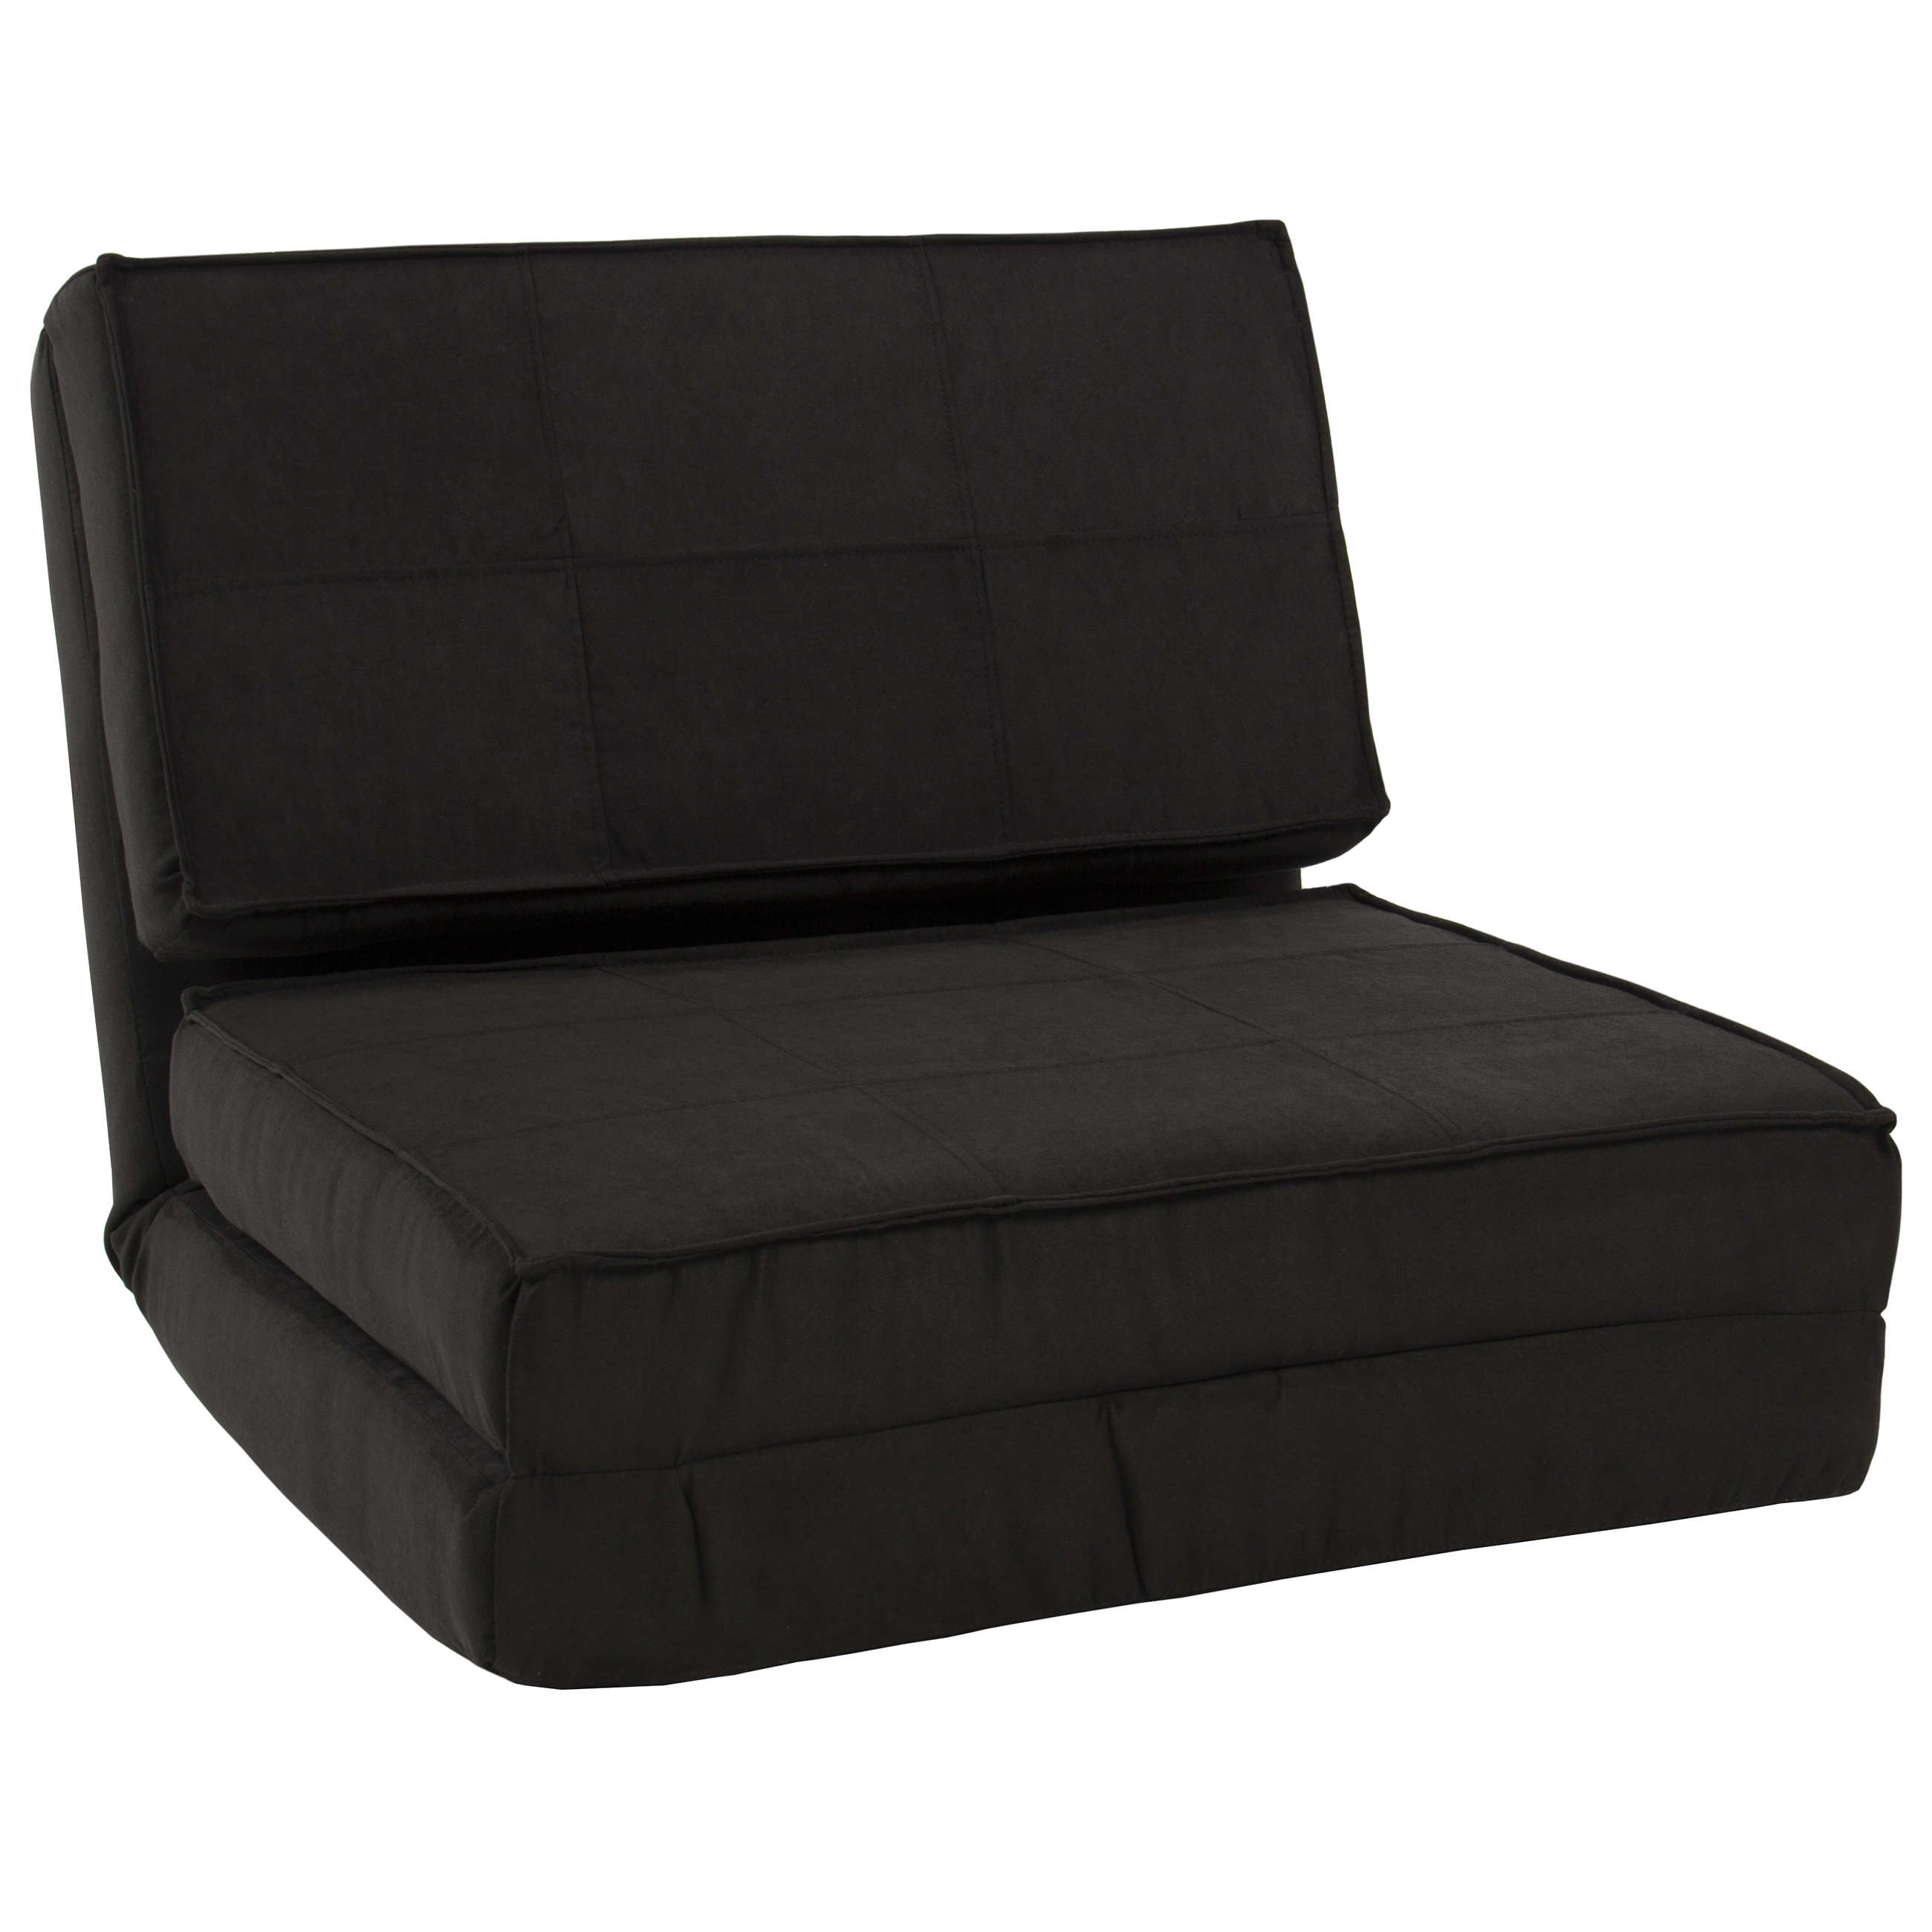 Fold Down Chair Flip Out Lounger Convertible Sleeper Bed Couch With Regard To Fold Up Sofa Chairs (Image 6 of 15)